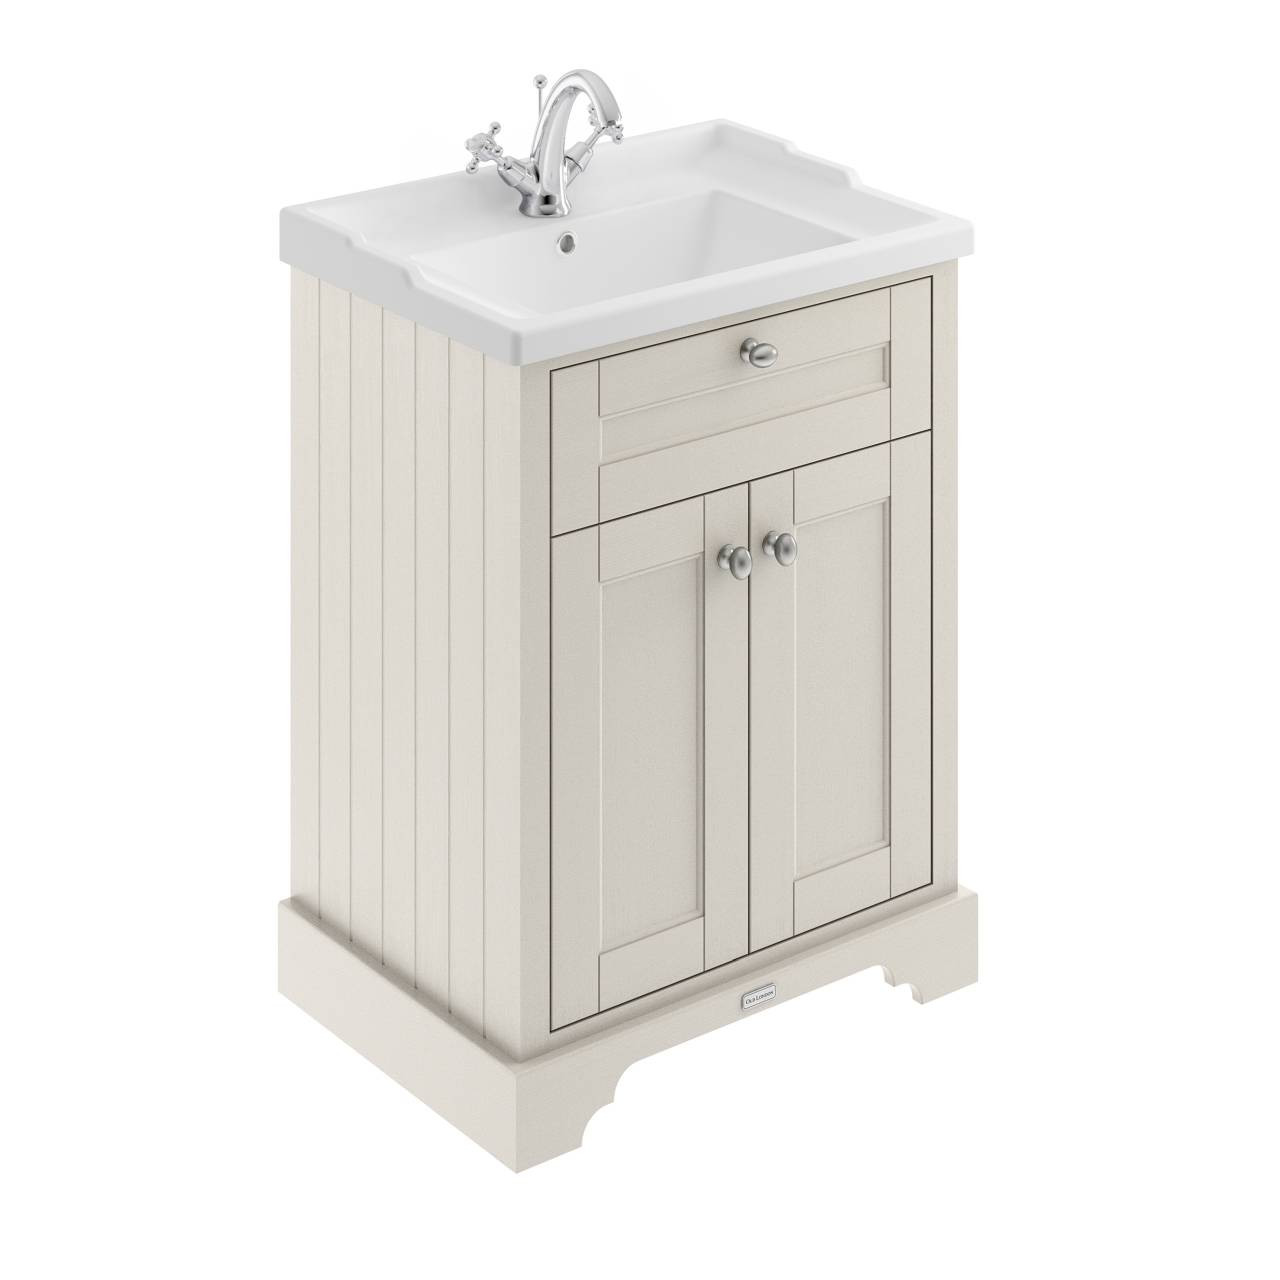 Old London Timeless Sand 600mm 2 Door Vanity Unit and Basin with 1 Tap Hole - LOF403